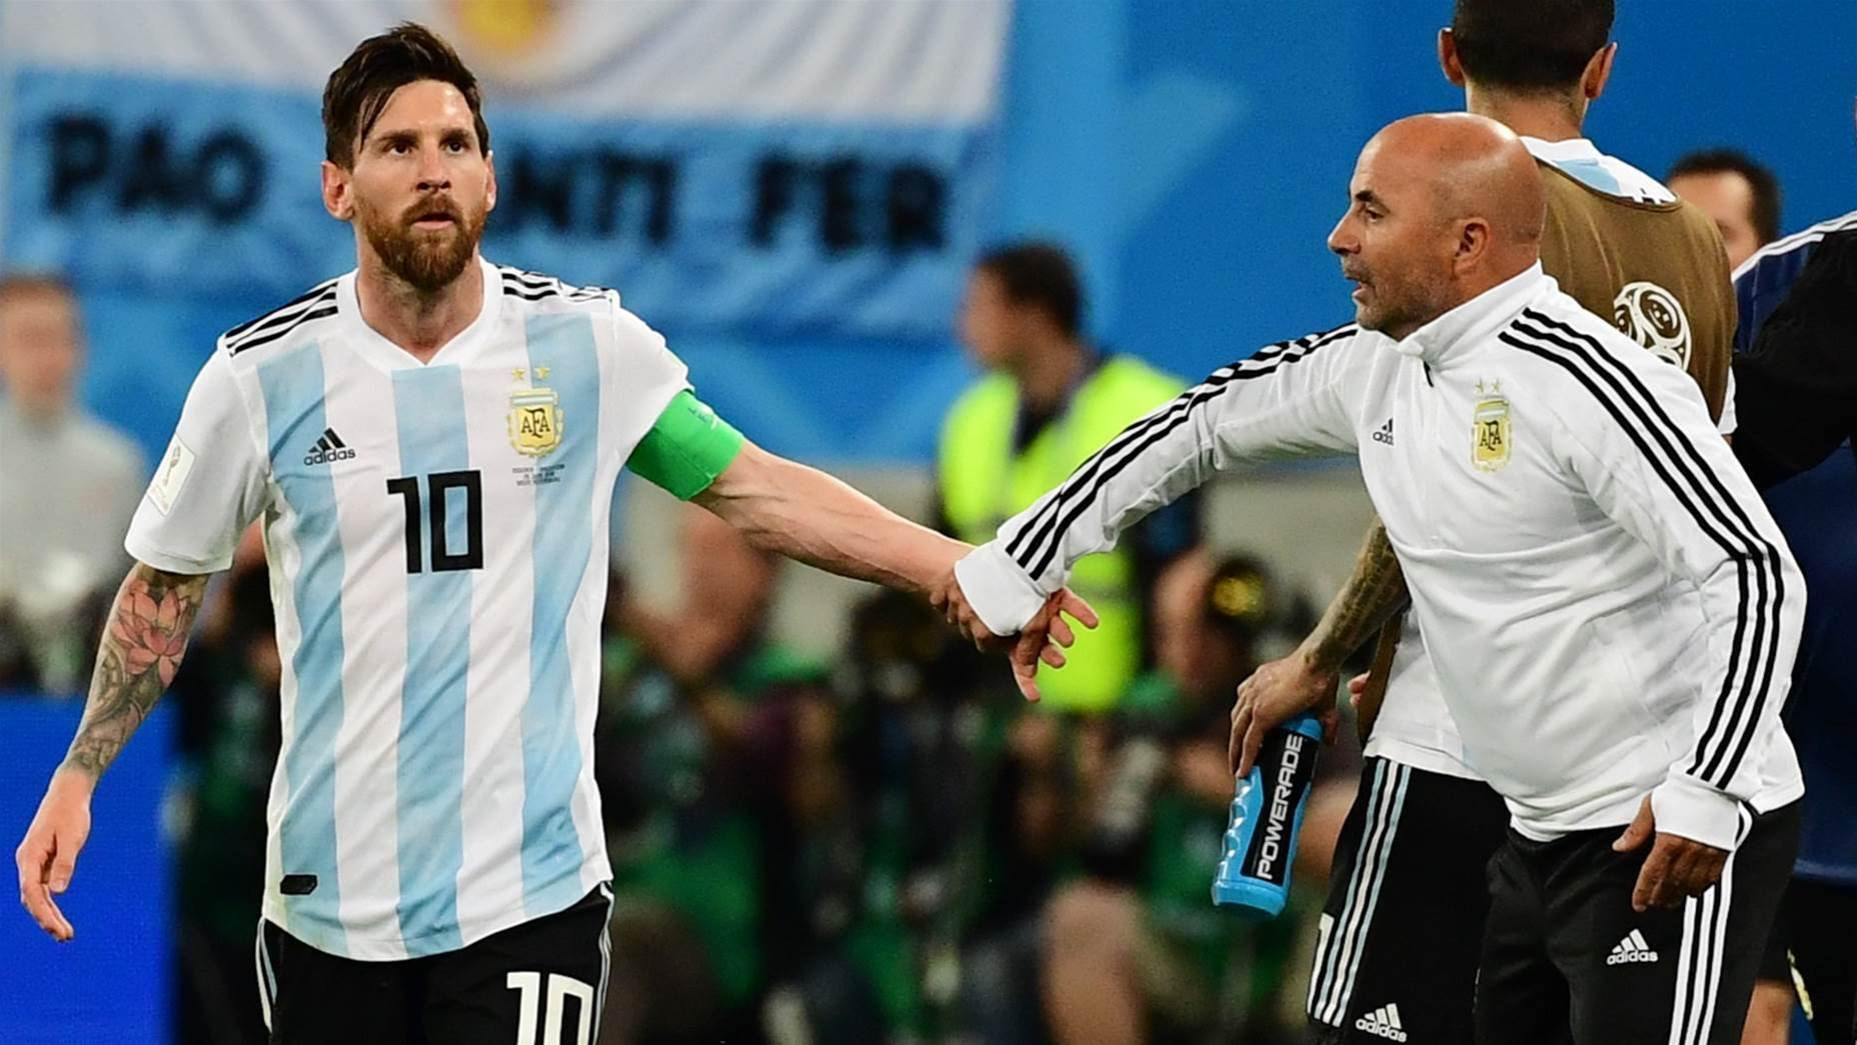 Sampaoli 'asked Messi' for advice on Aguero sub